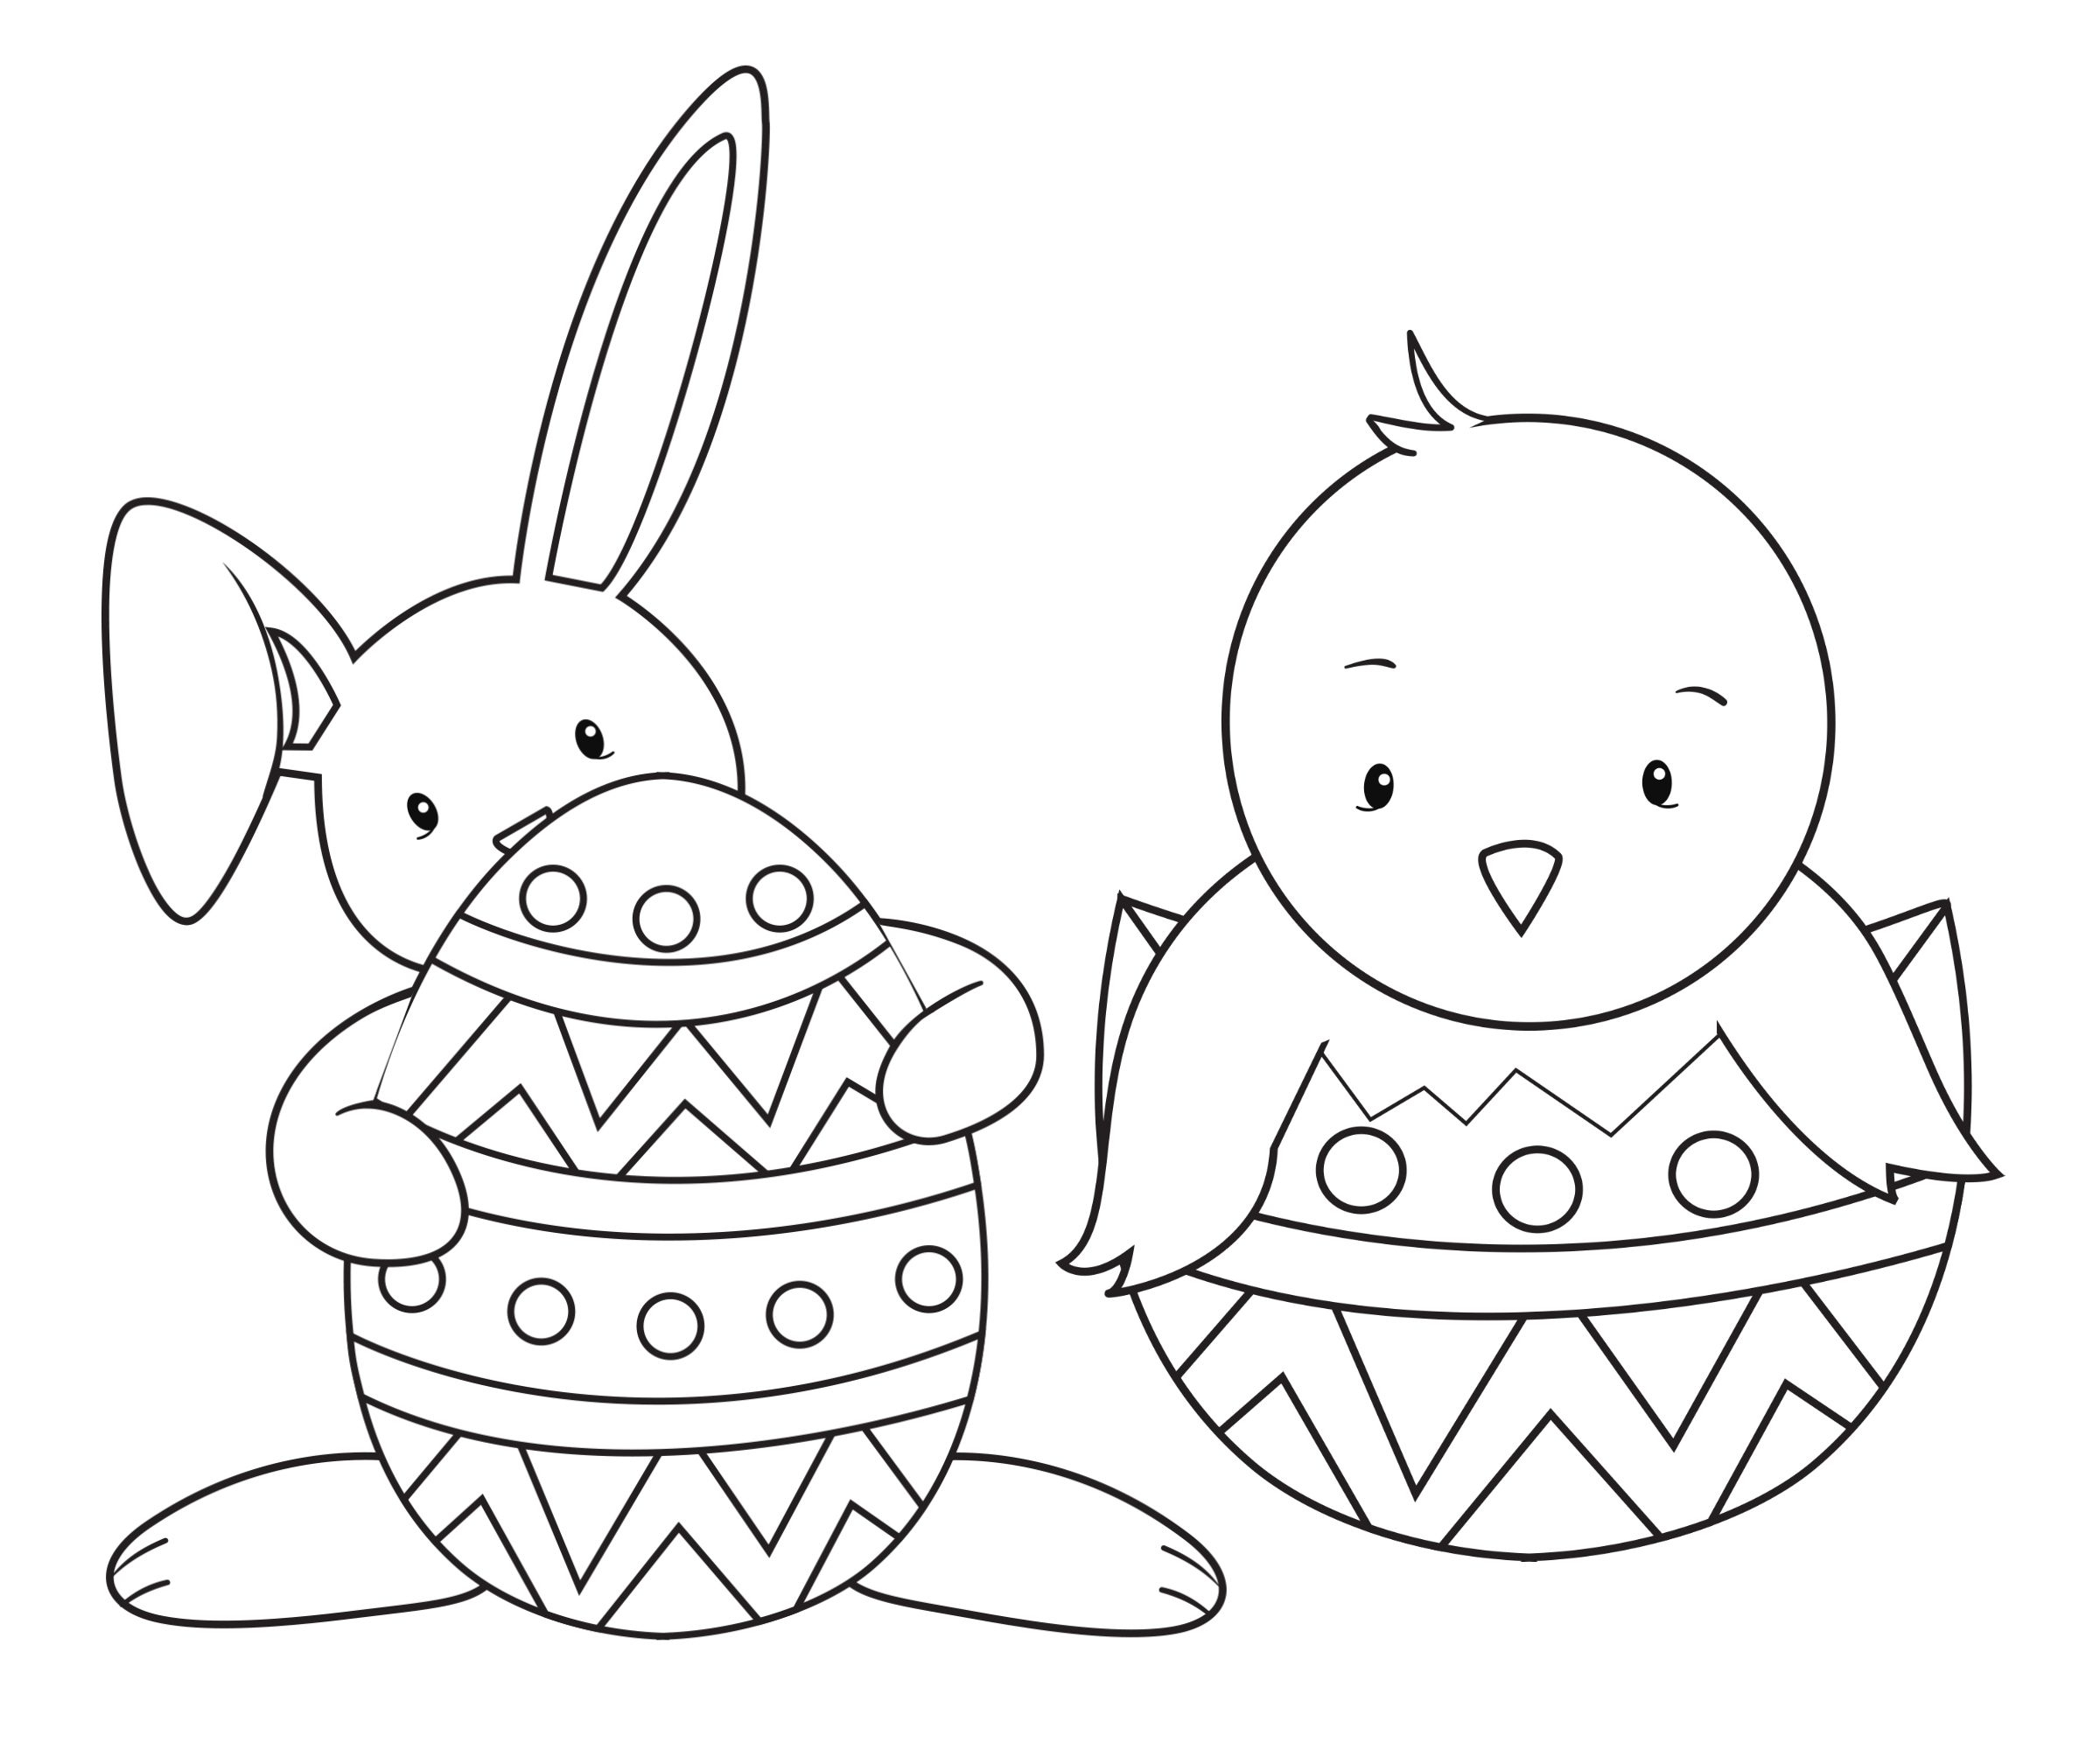 Easter Coloring Pages for Kids to Print Of Easter Coloring14 Gallery